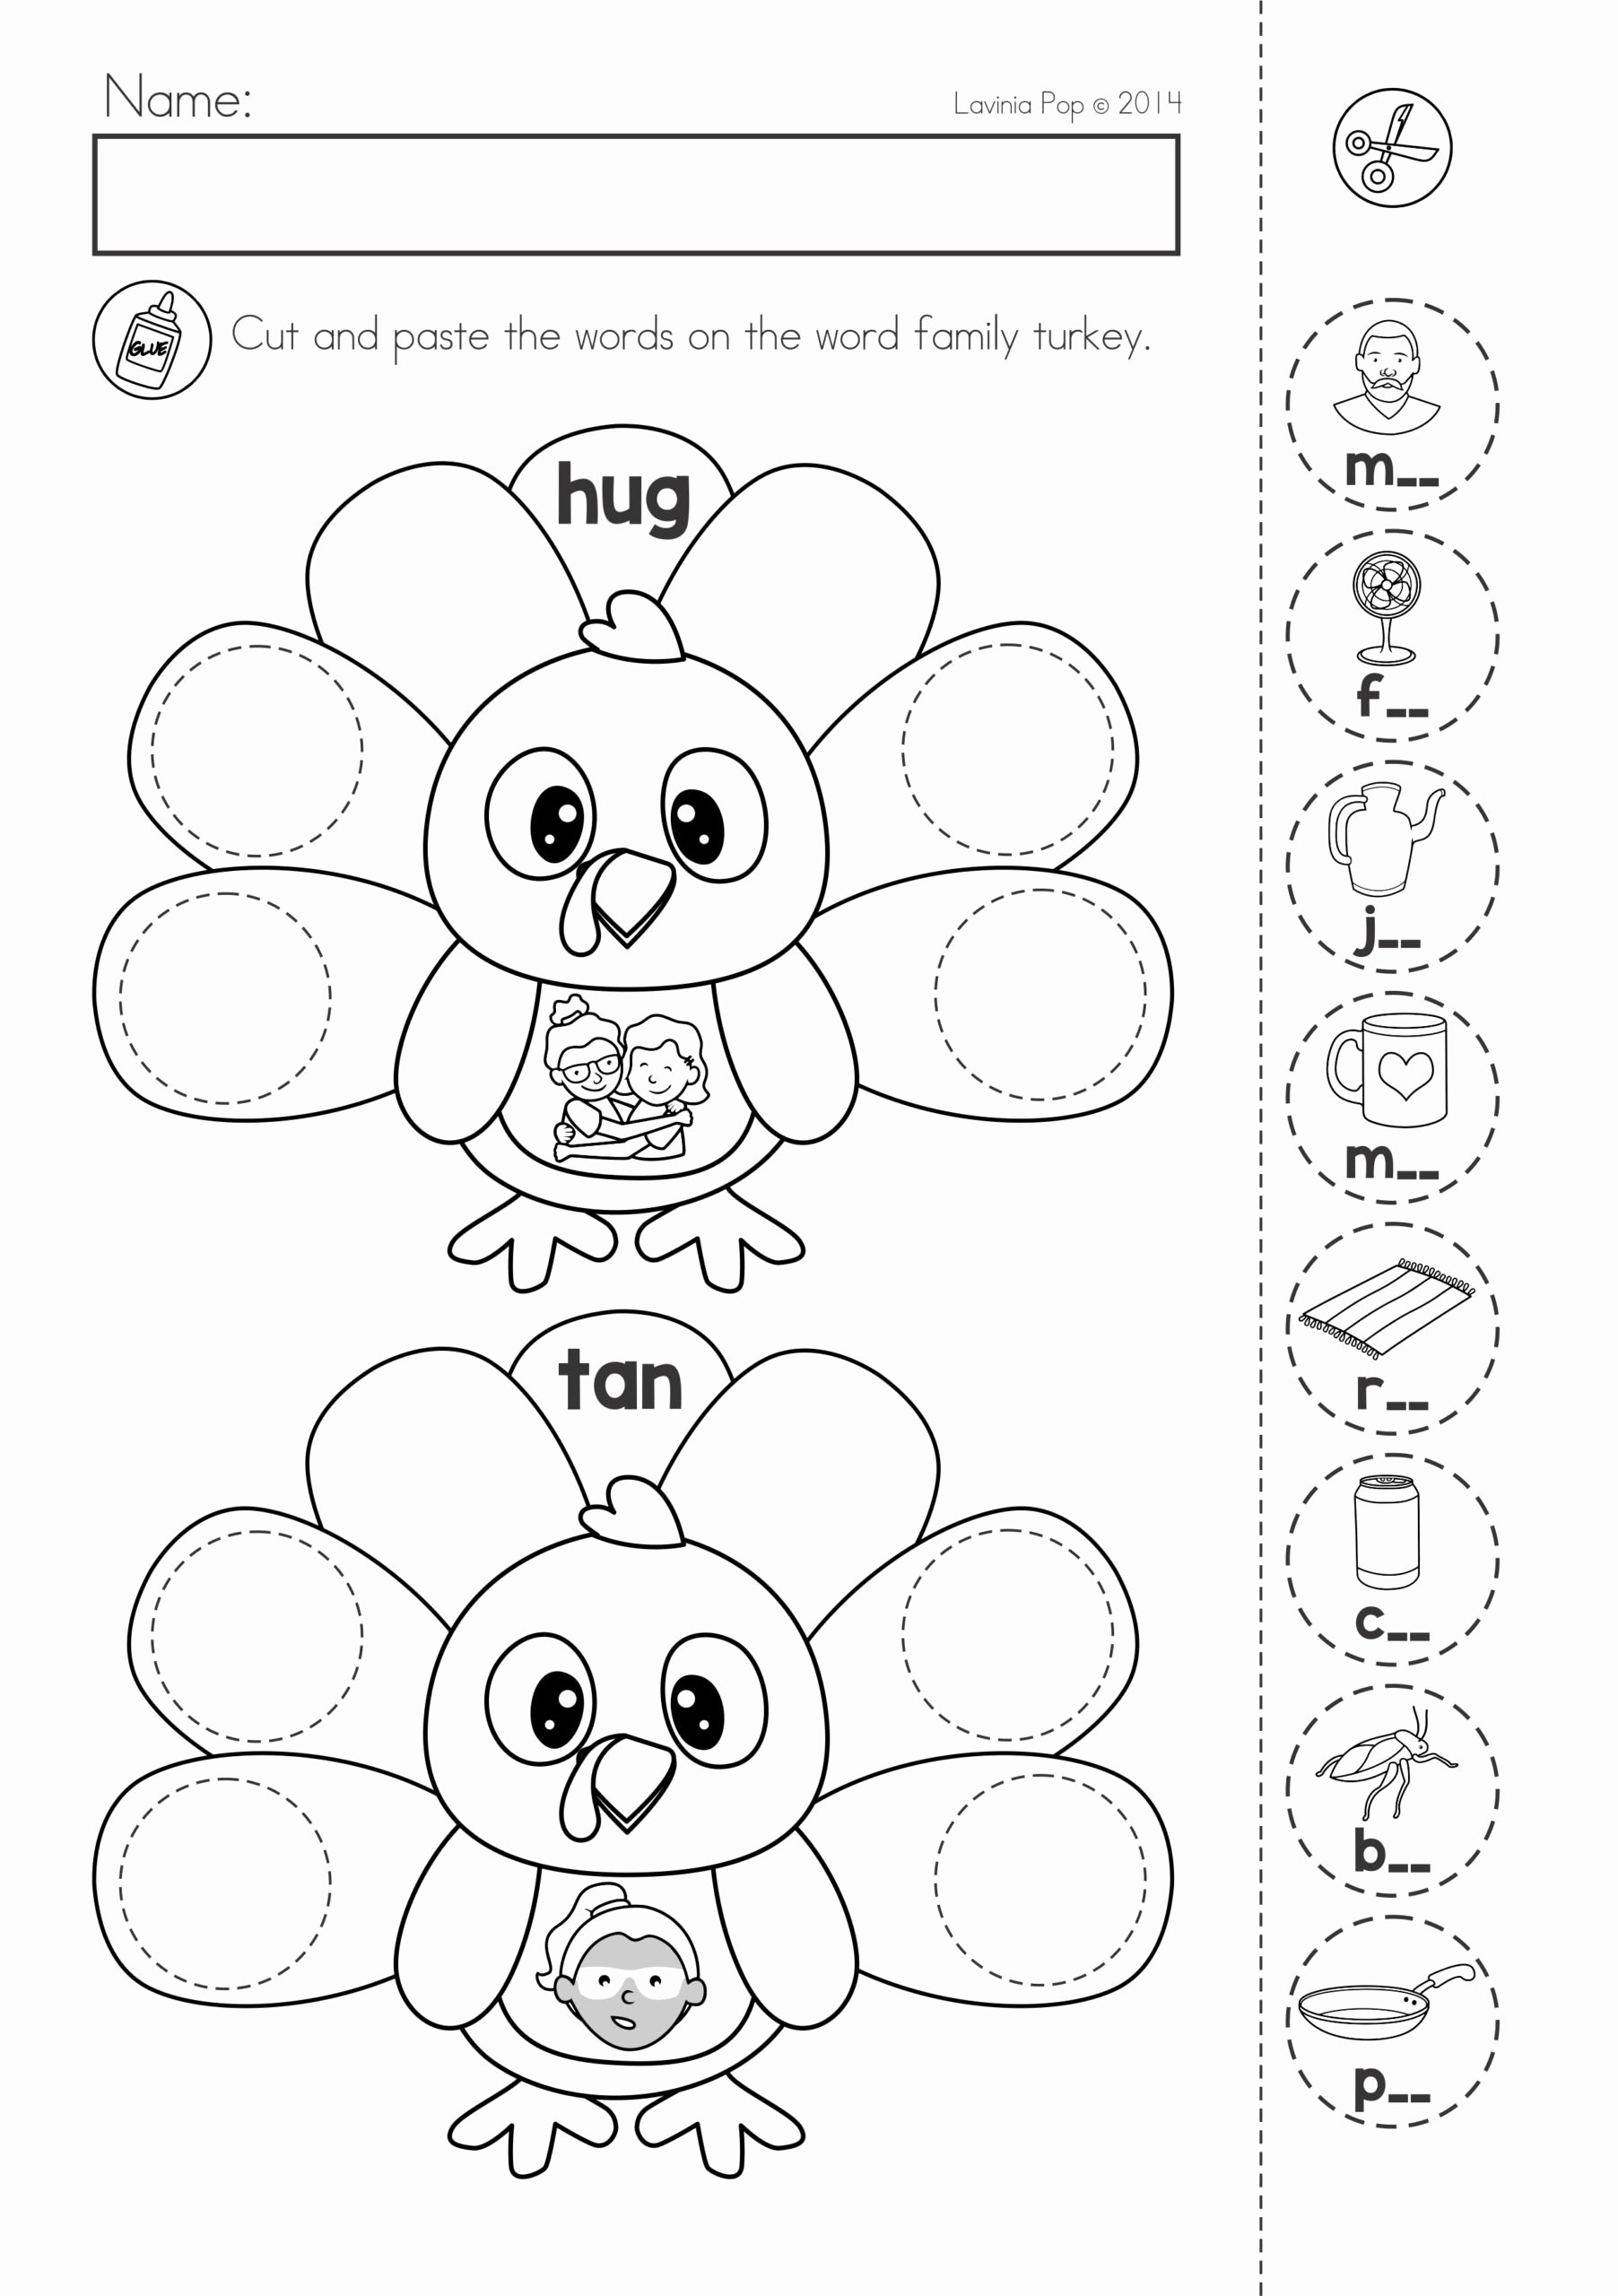 Cut and Paste Math Worksheets for Preschoolers Best Of Free Preschool Printables Cut and Paste Worksheet Four Line